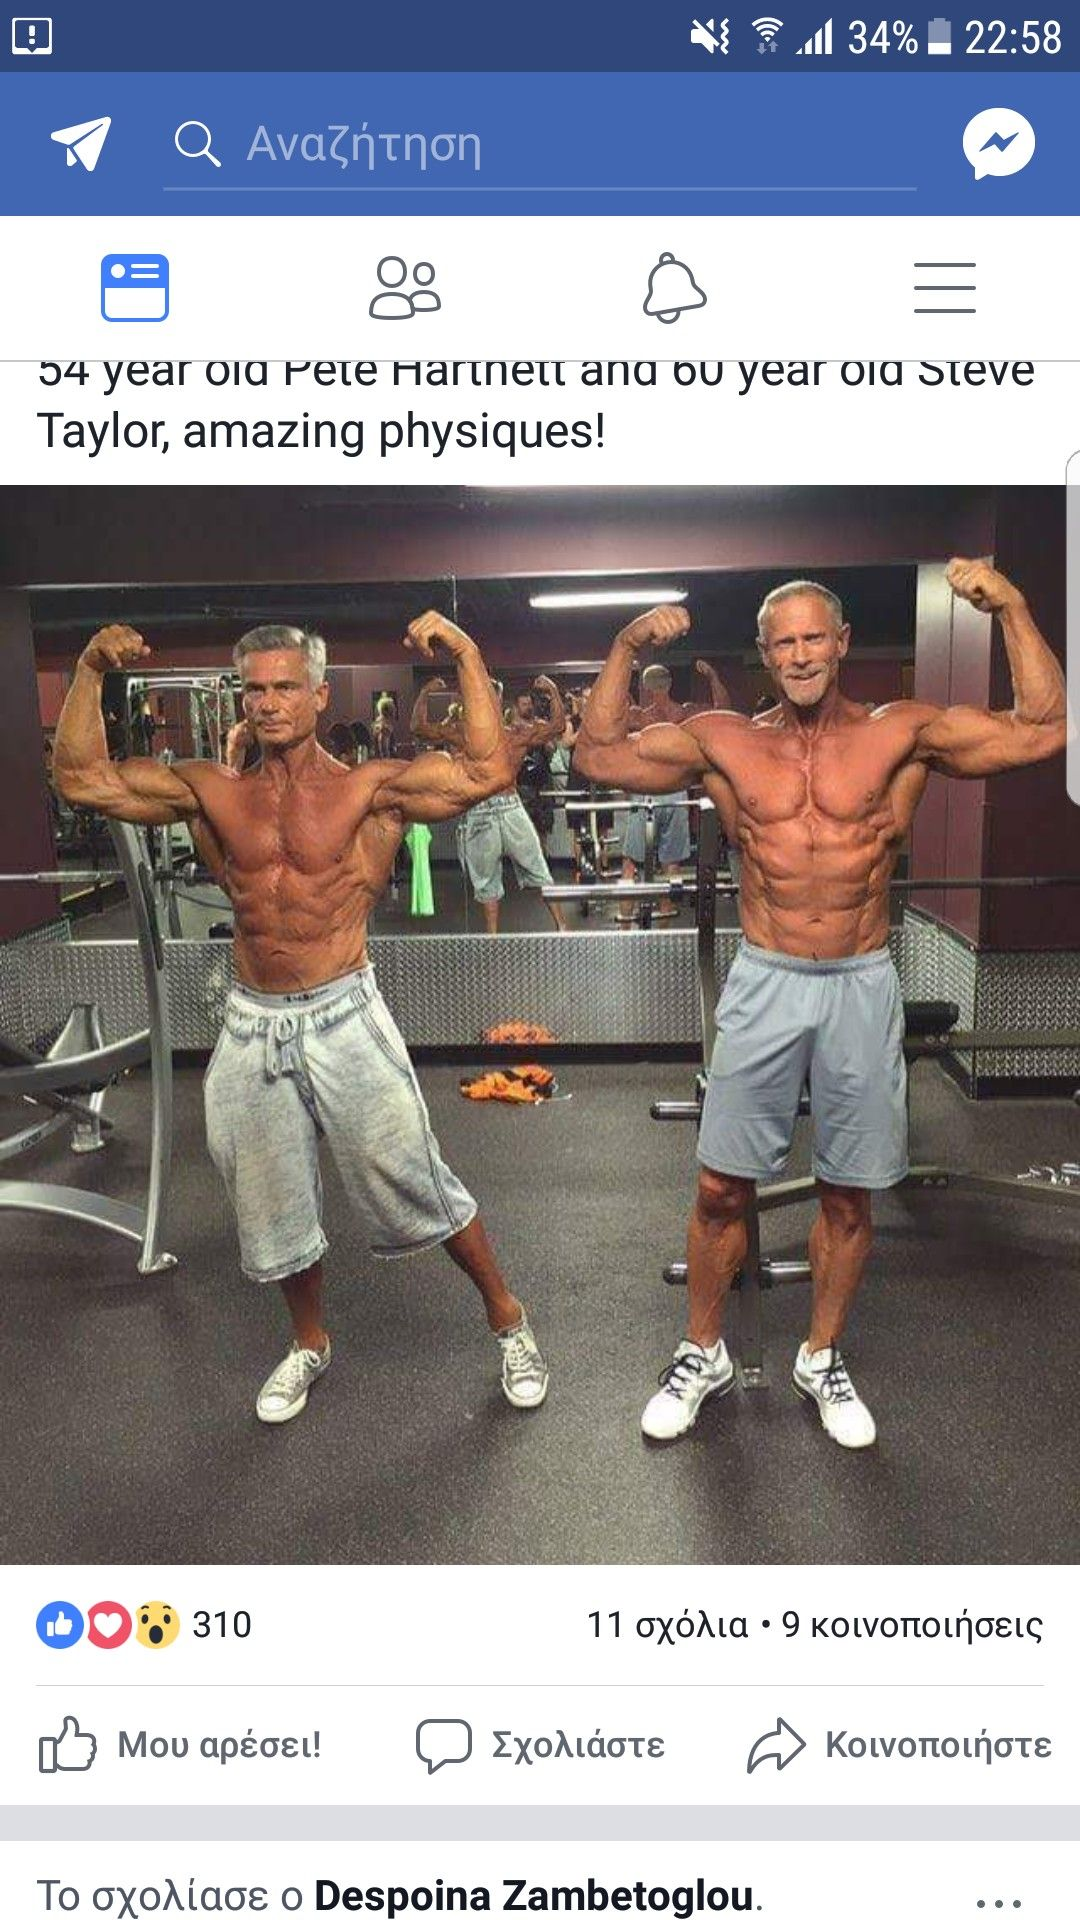 Pete Hartnett 54 Years Old Steve Taylor 60 Years Old แก ต วไปอยากแข งแรงแบบน Senior Fitness Over 40 Fitness Men Exercise Website